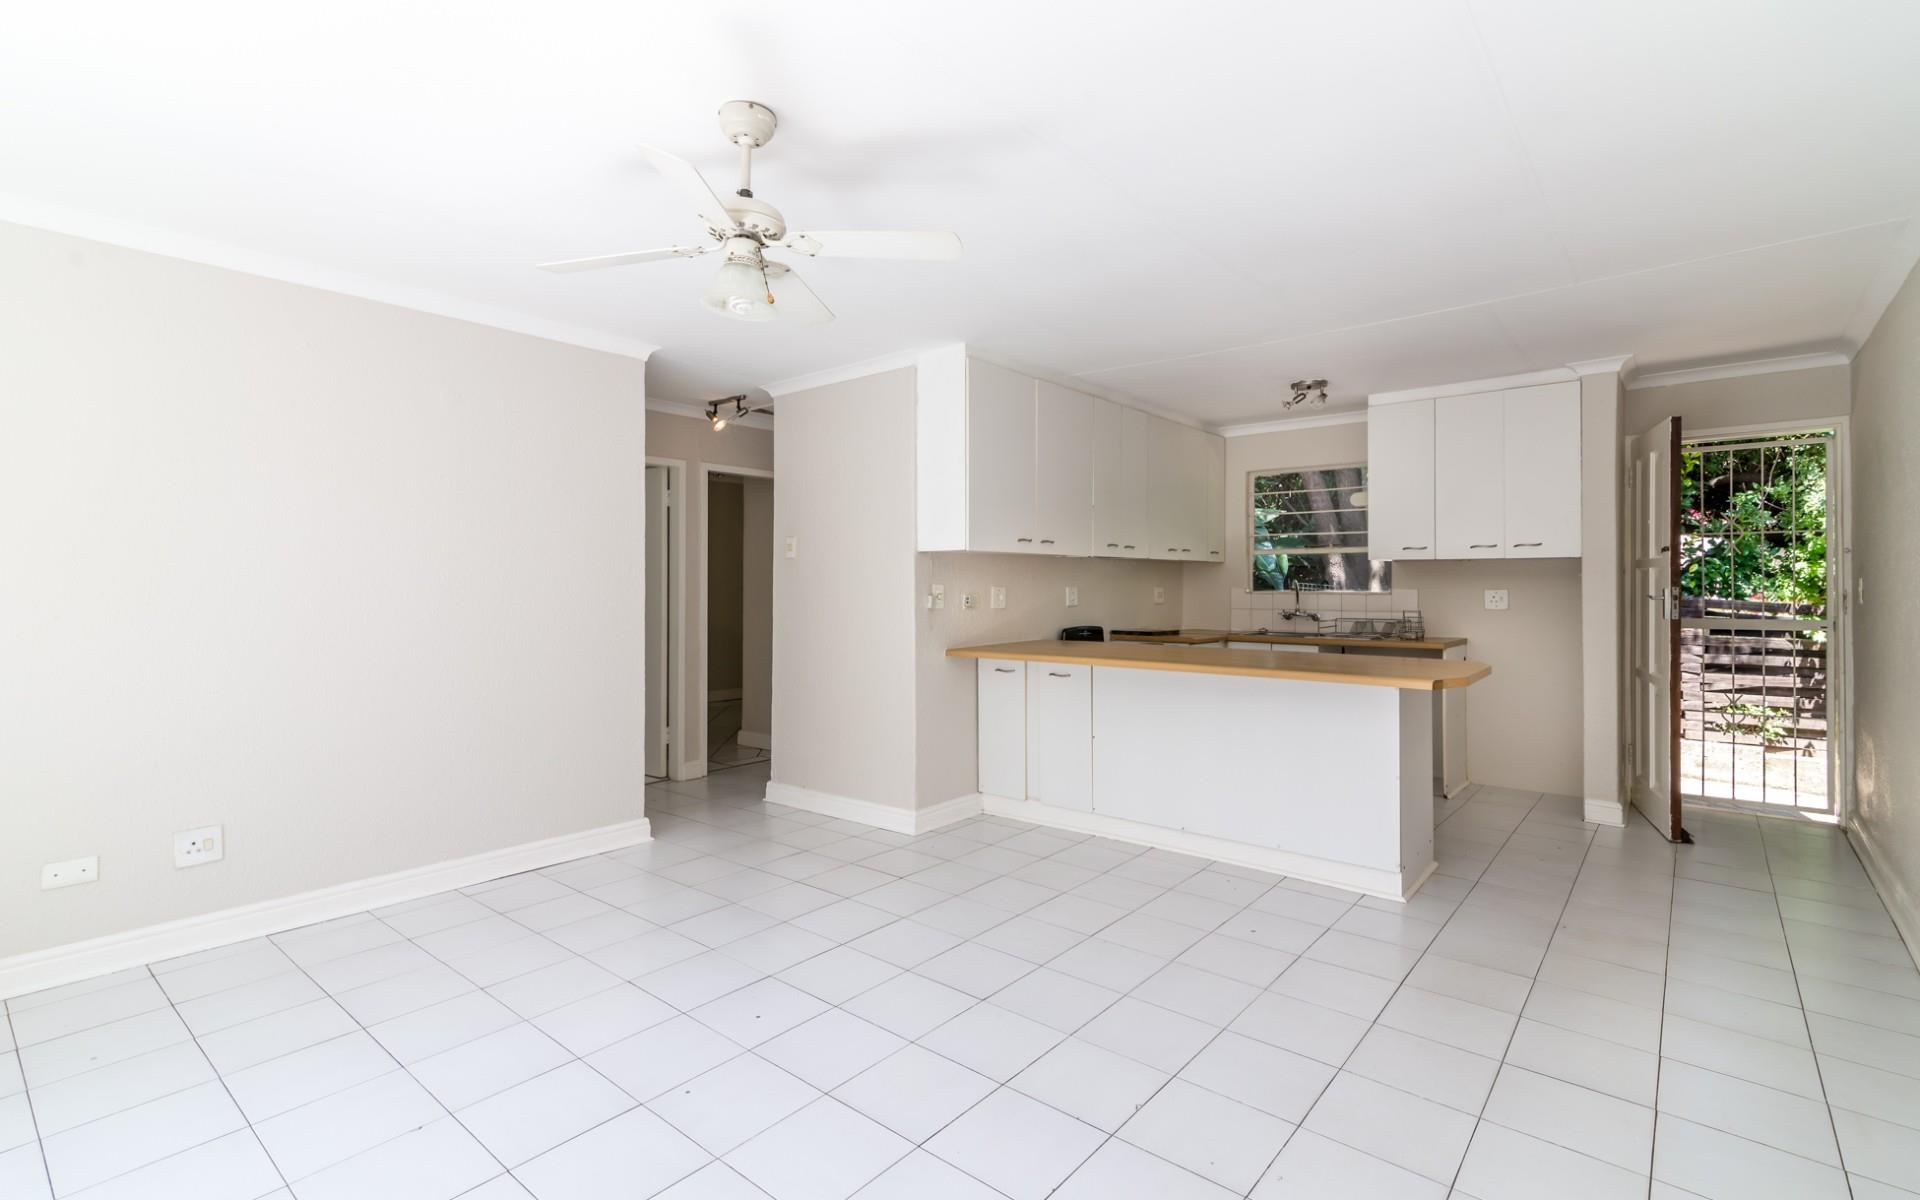 2 Bedroom Townhouse For Sale in North Riding